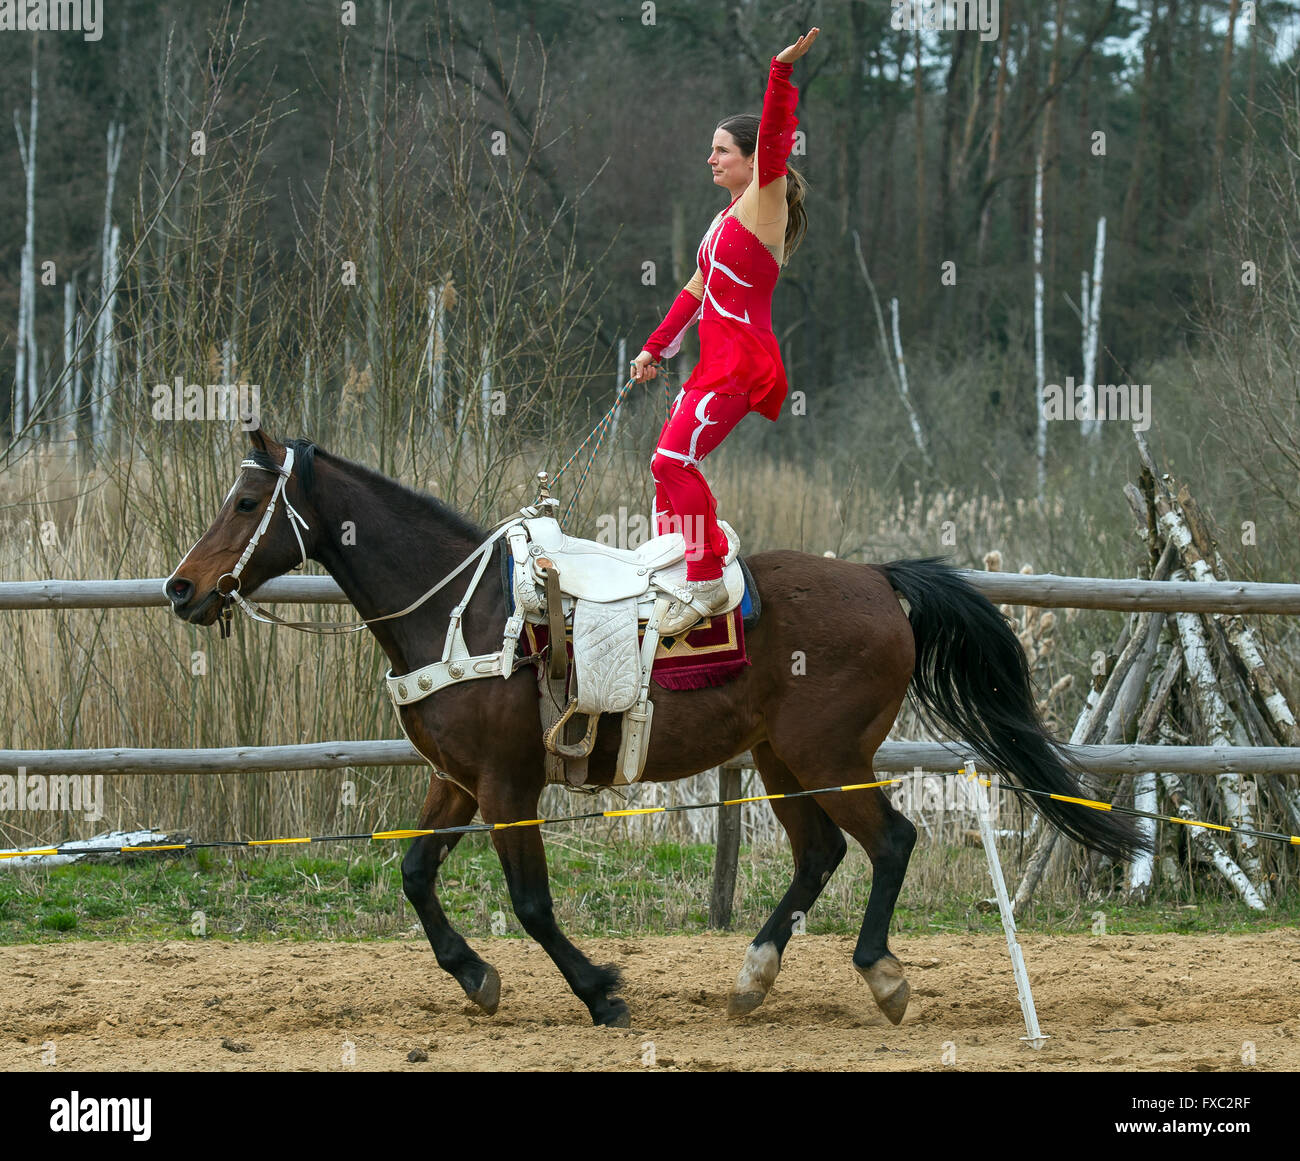 Muencheberg, Germany. 04th Apr, 2016. Stunt rider Daja Ziefuss rides her horse Eden standing up at Sunbow Ranch - Stock Image